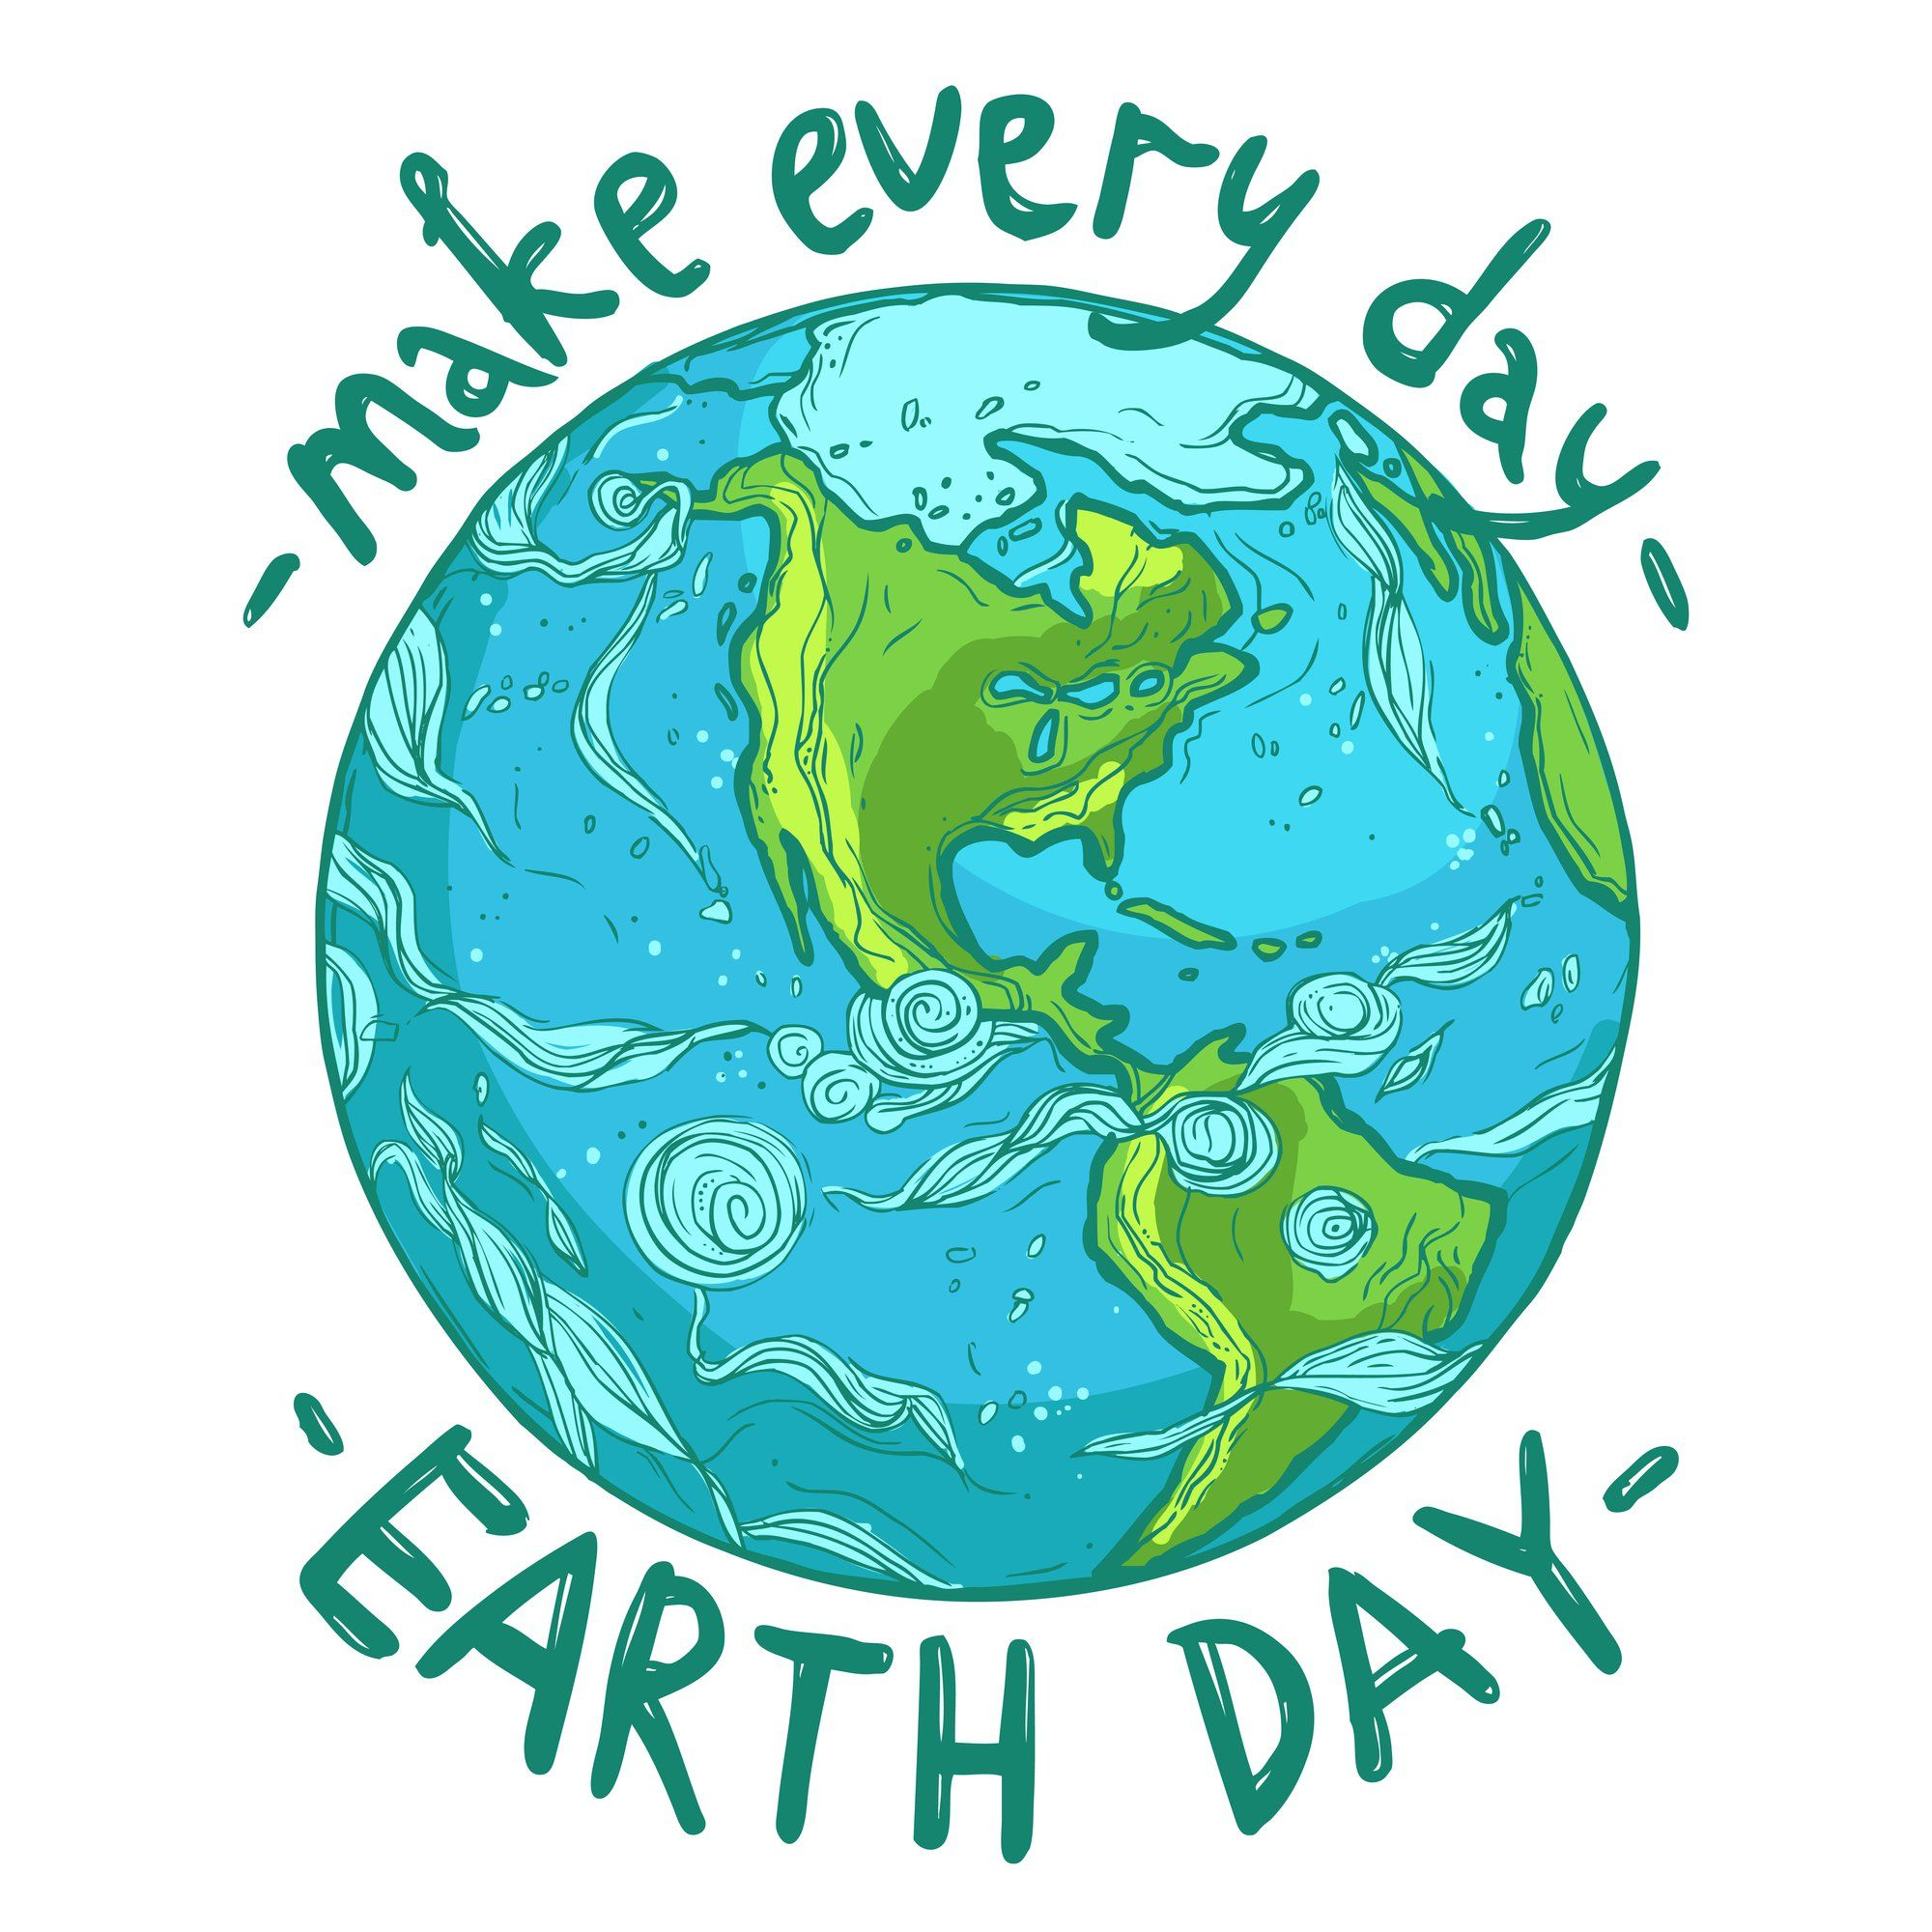 In Honor Of Earth Day Yesterday We Collaborated With Hc Bentley To Give You A List Of Ways To Live In An Environ Earth Day Posters Earth Day Save Planet Earth